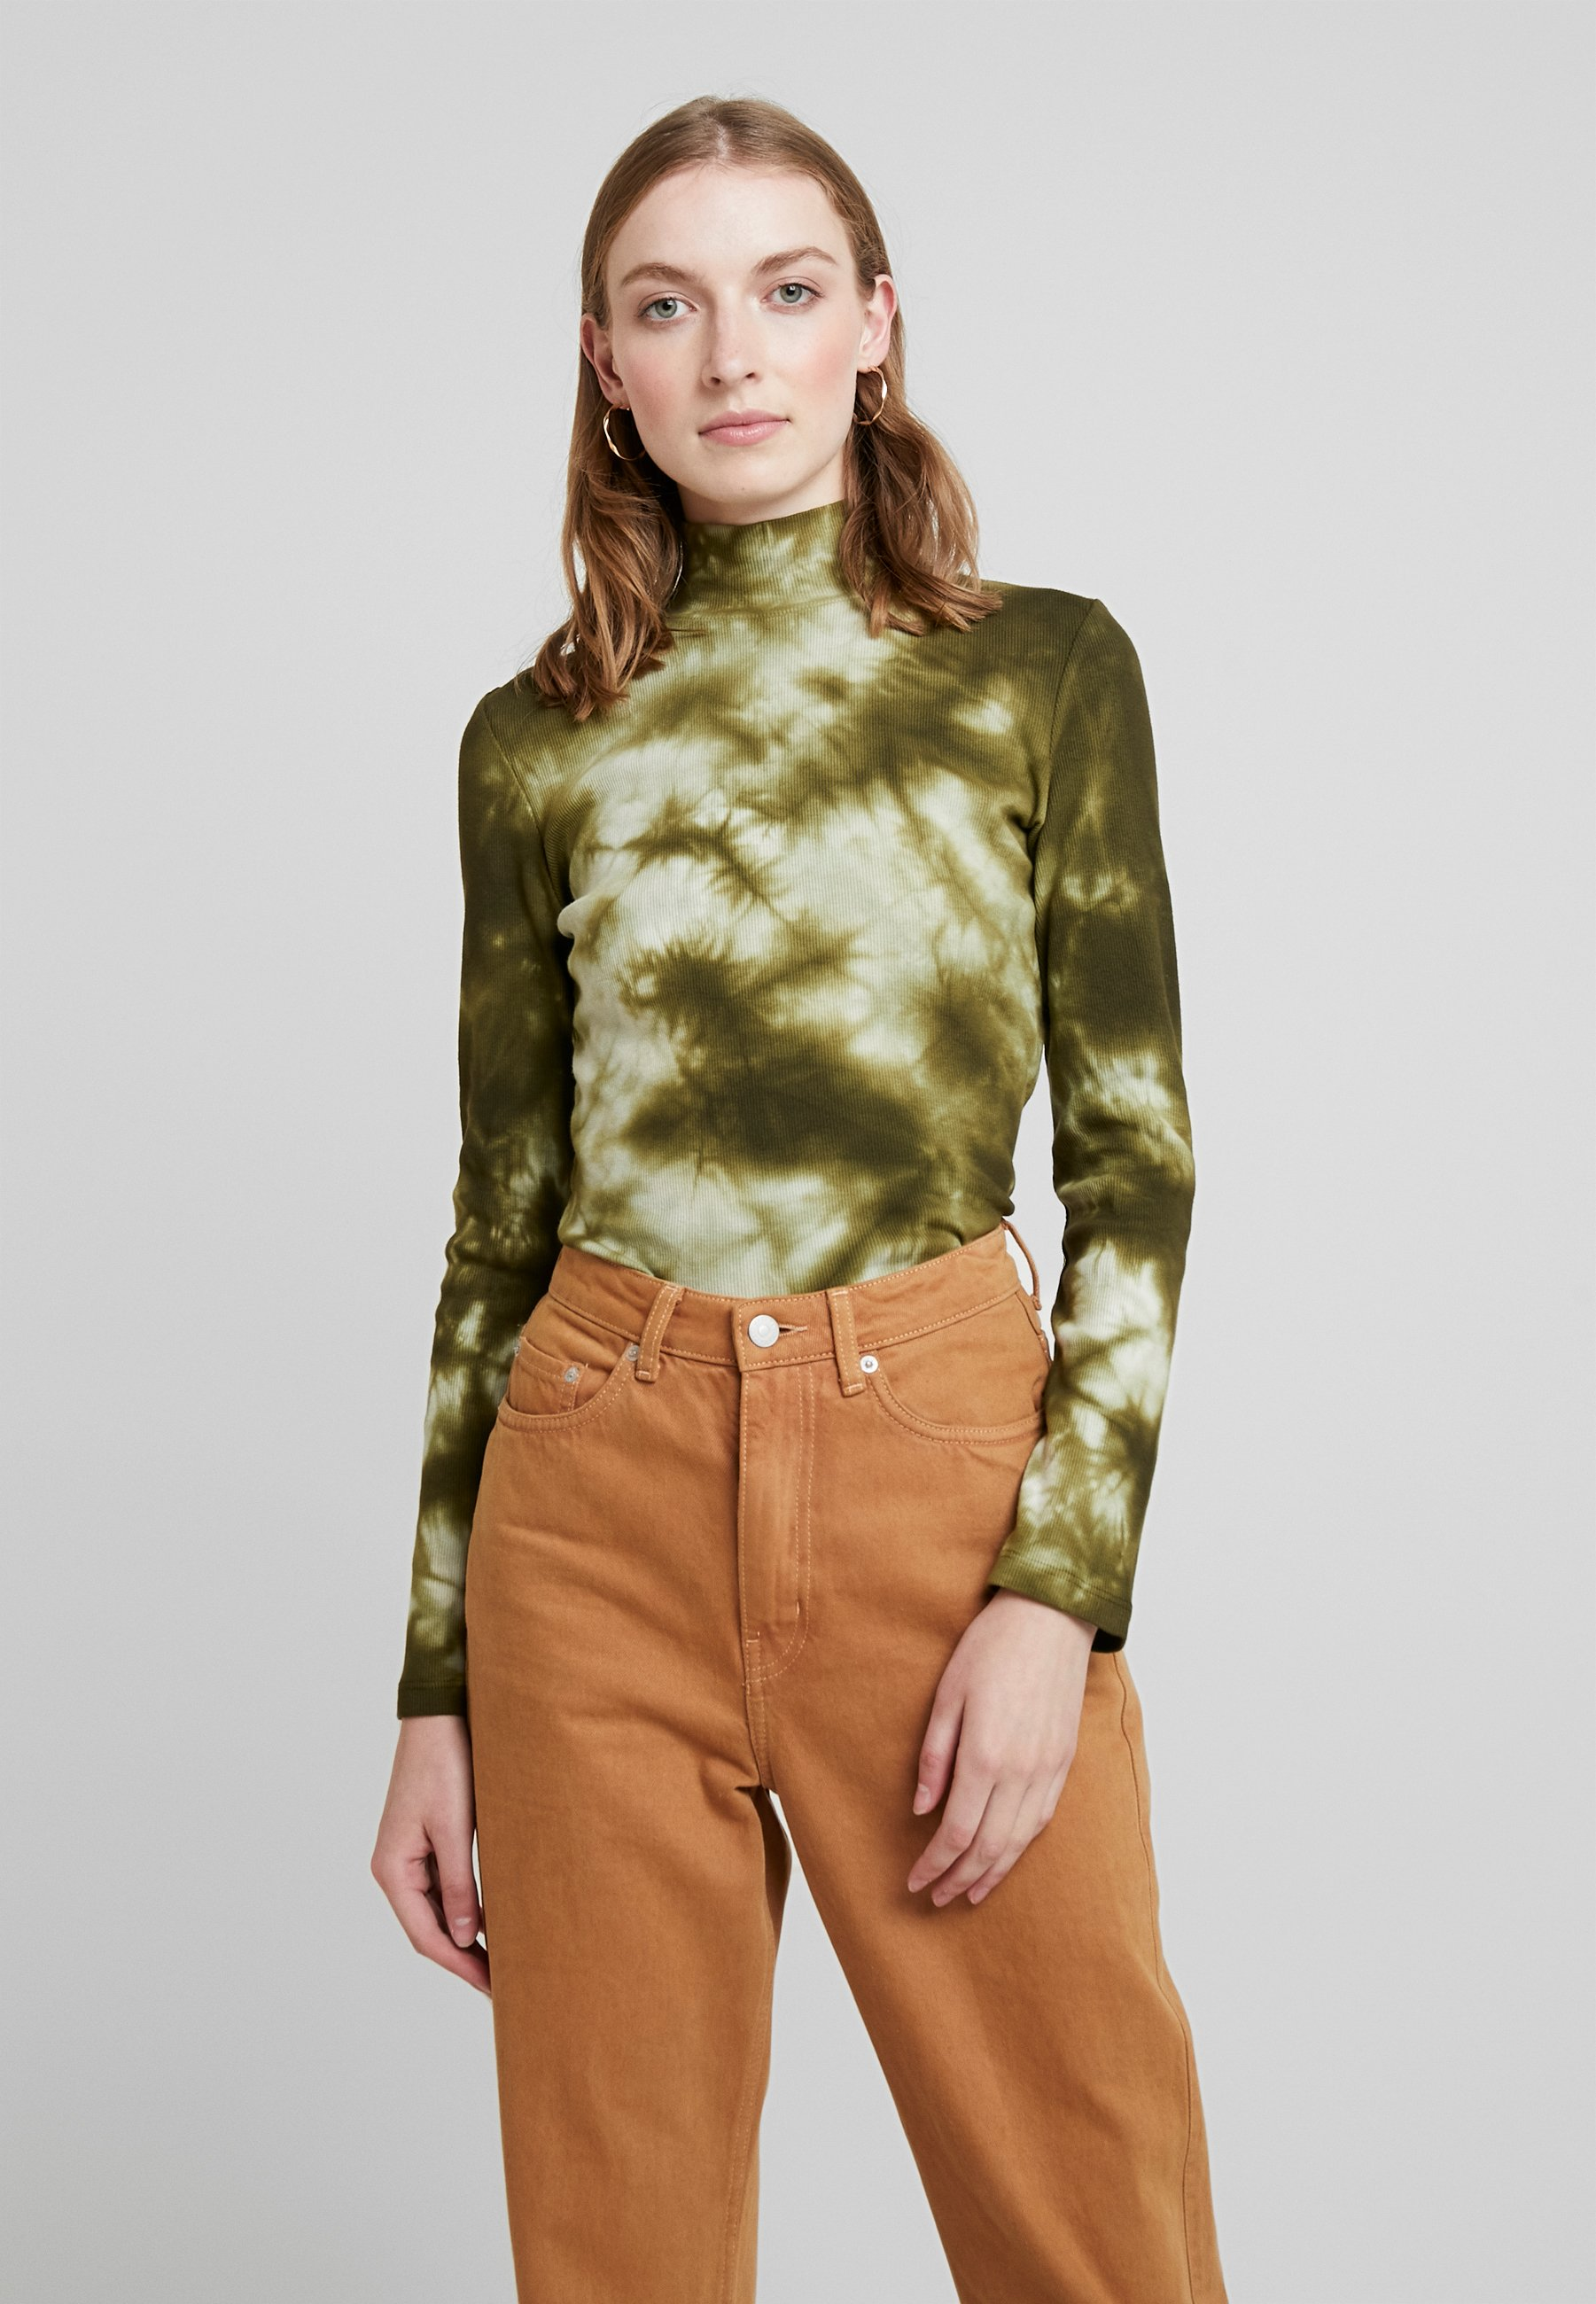 T shirt More One Story Olive À Manches LonguesMilitary nX80wOPk